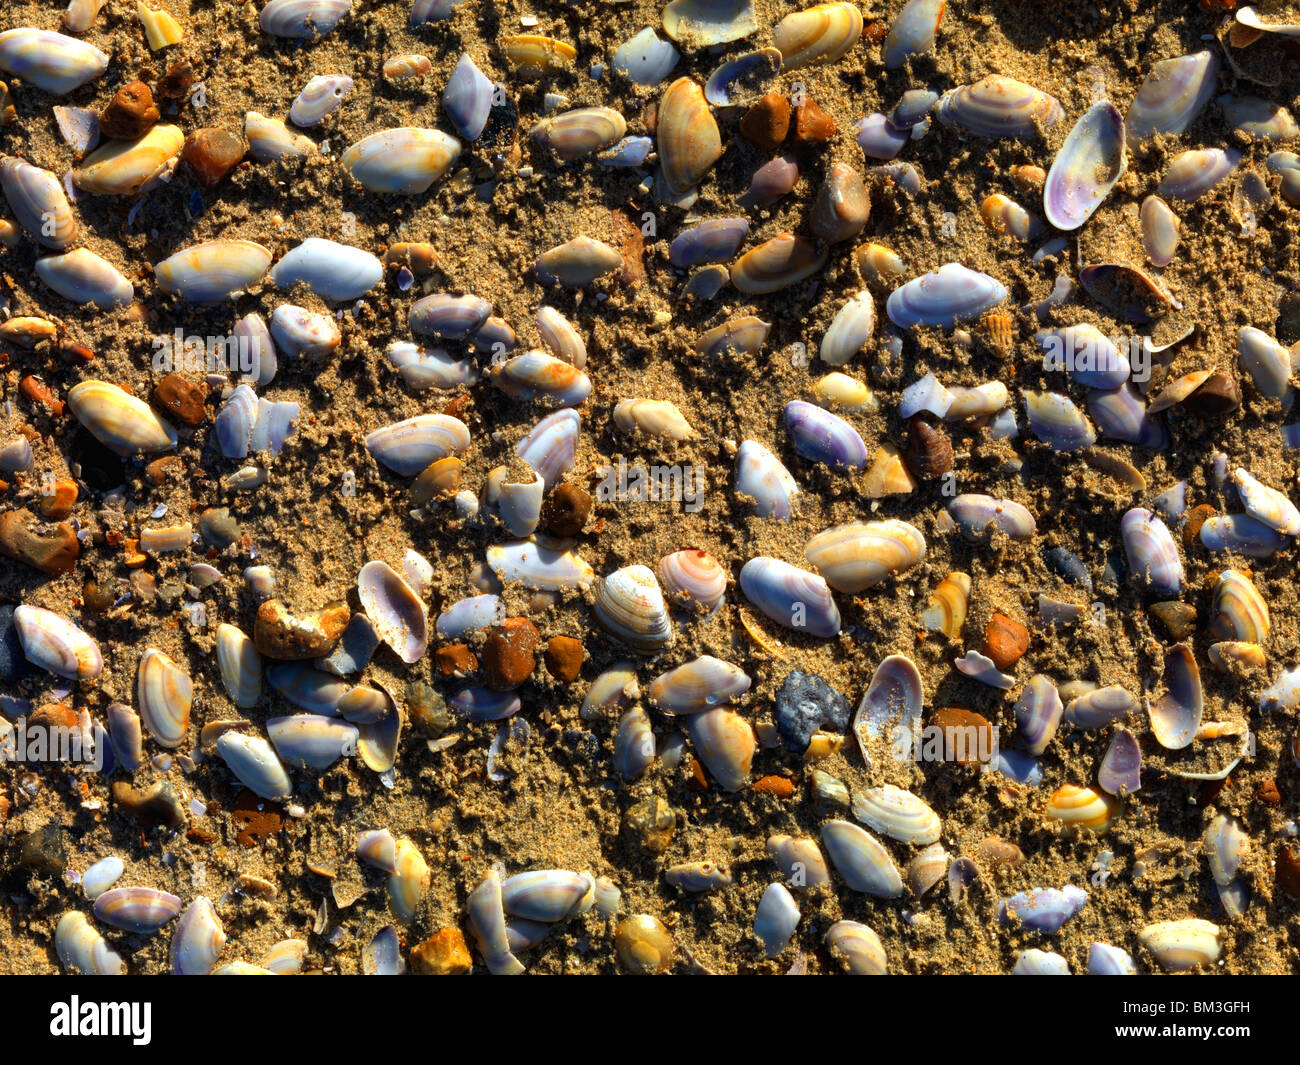 Shells & Pebbles On Beach - Stock Image